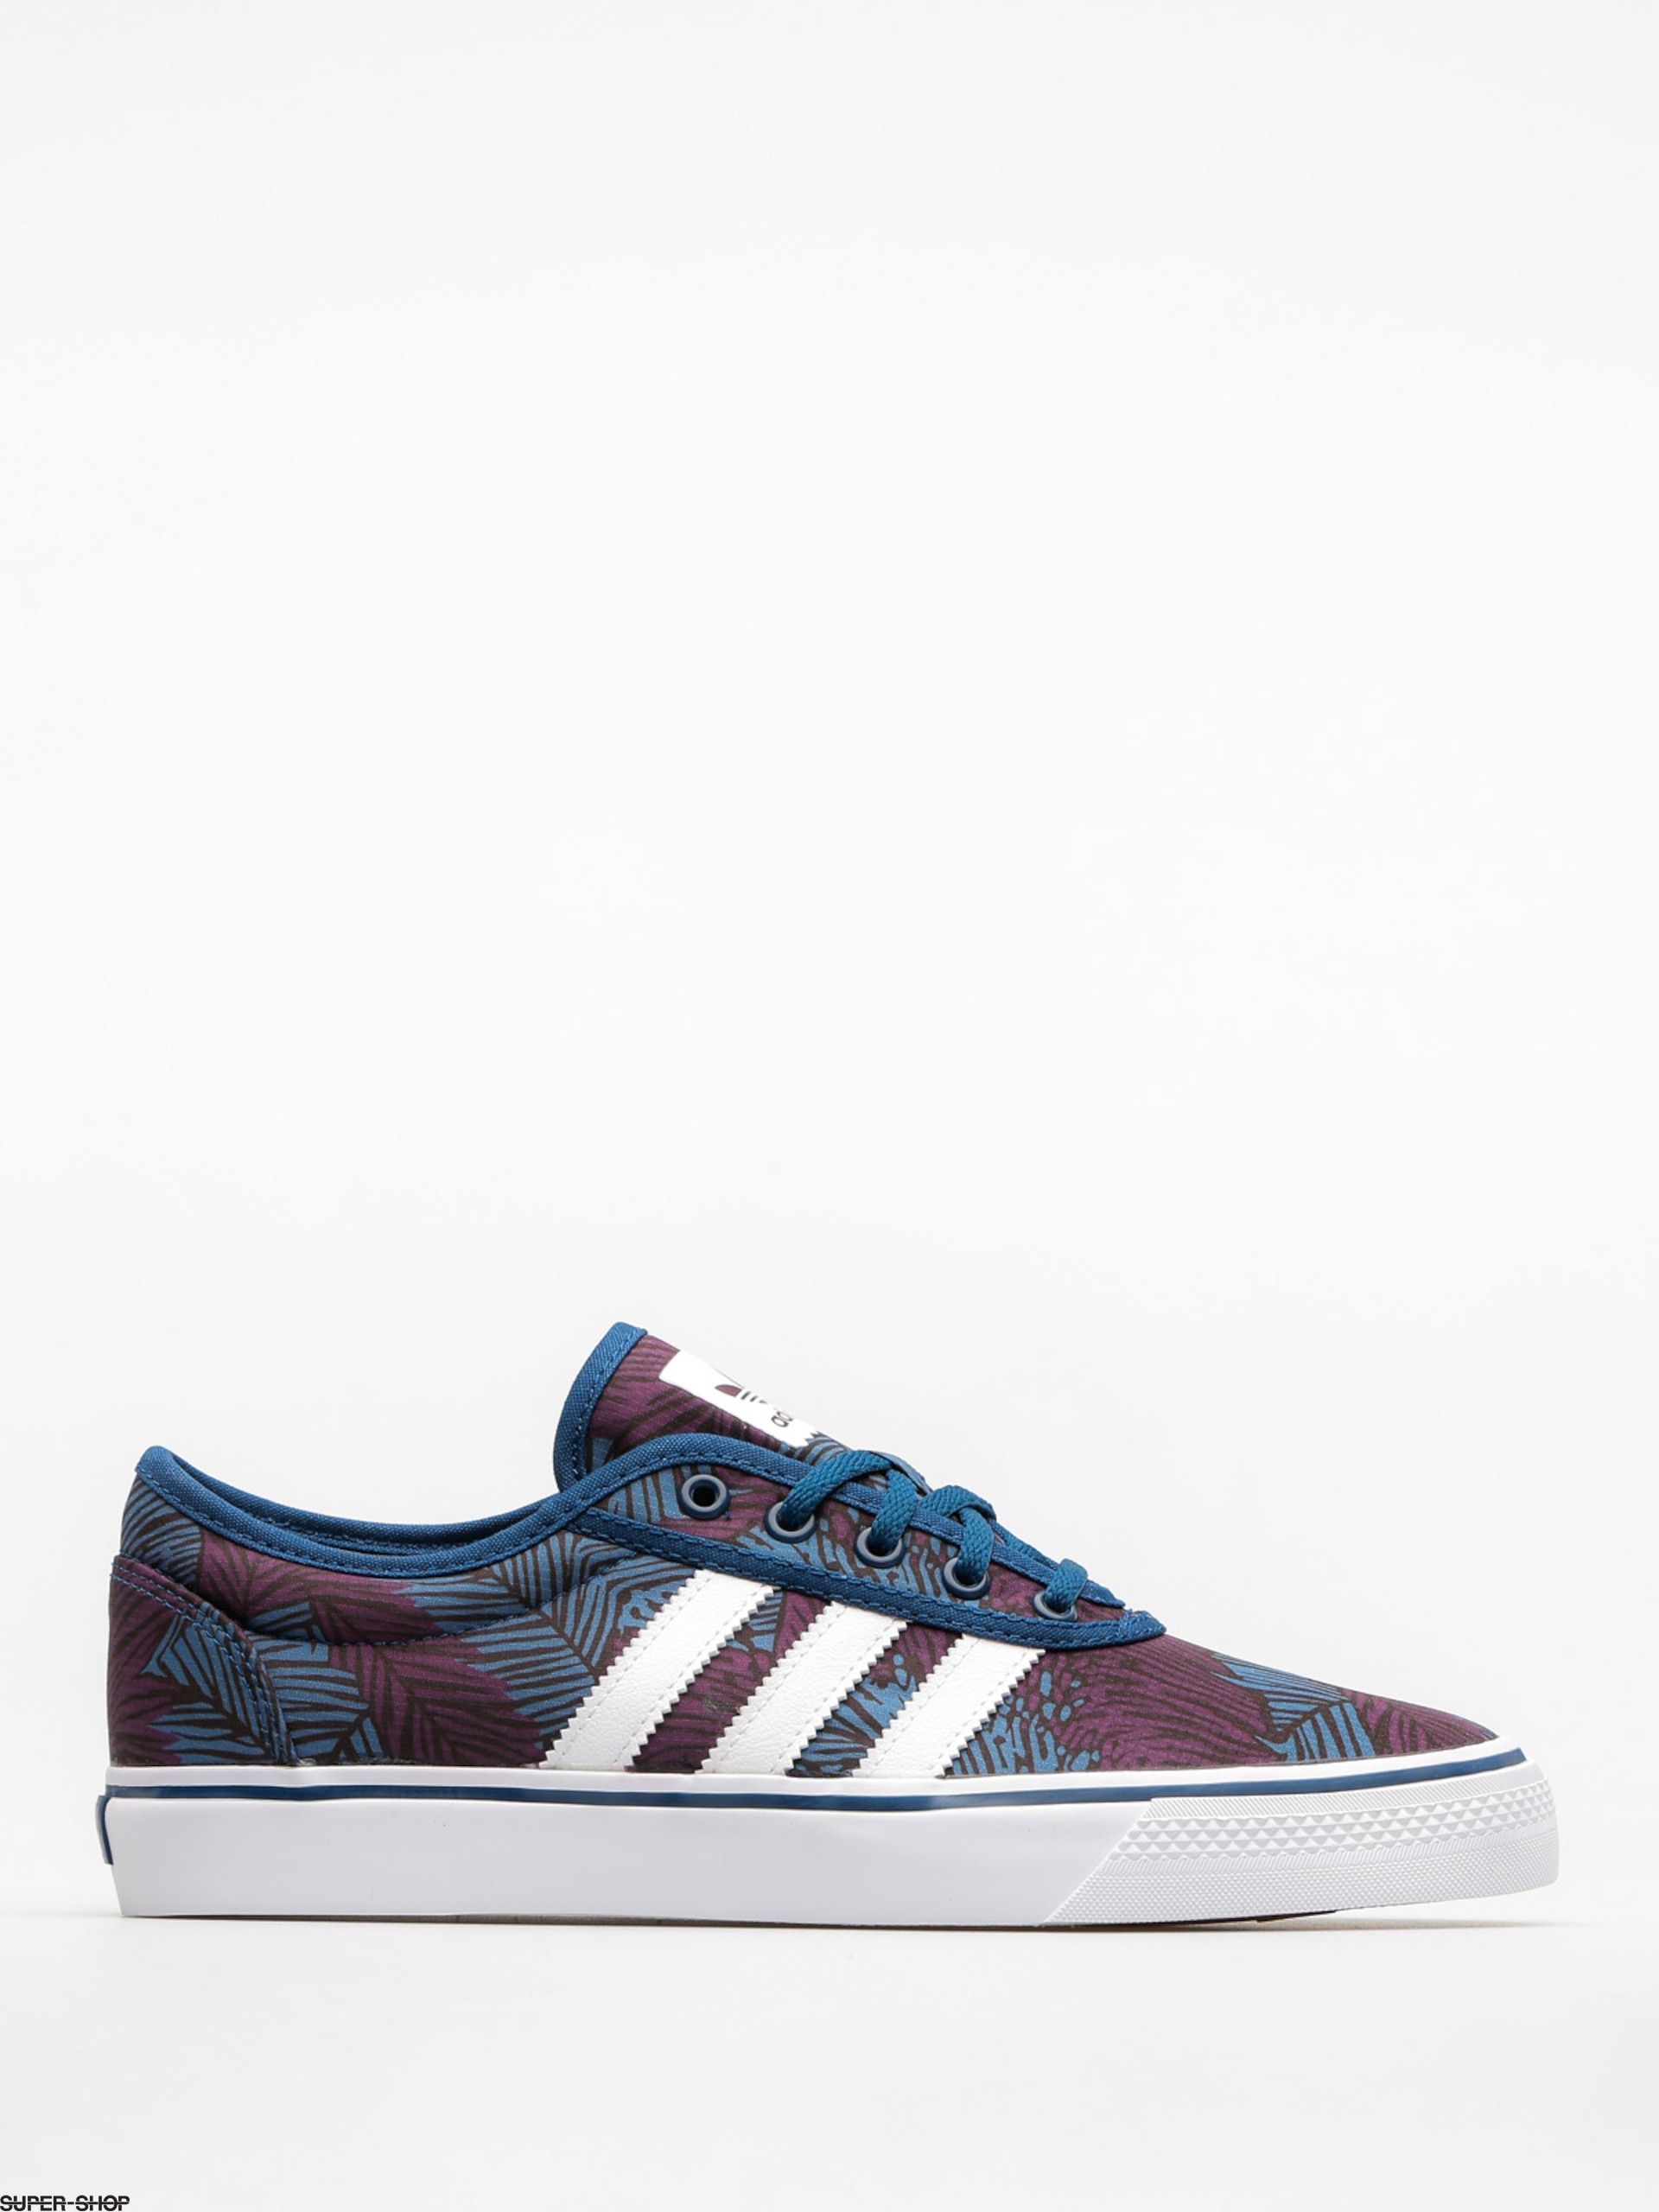 adidas Shoes Adi Easy (blunit/ftwwht/rednit)